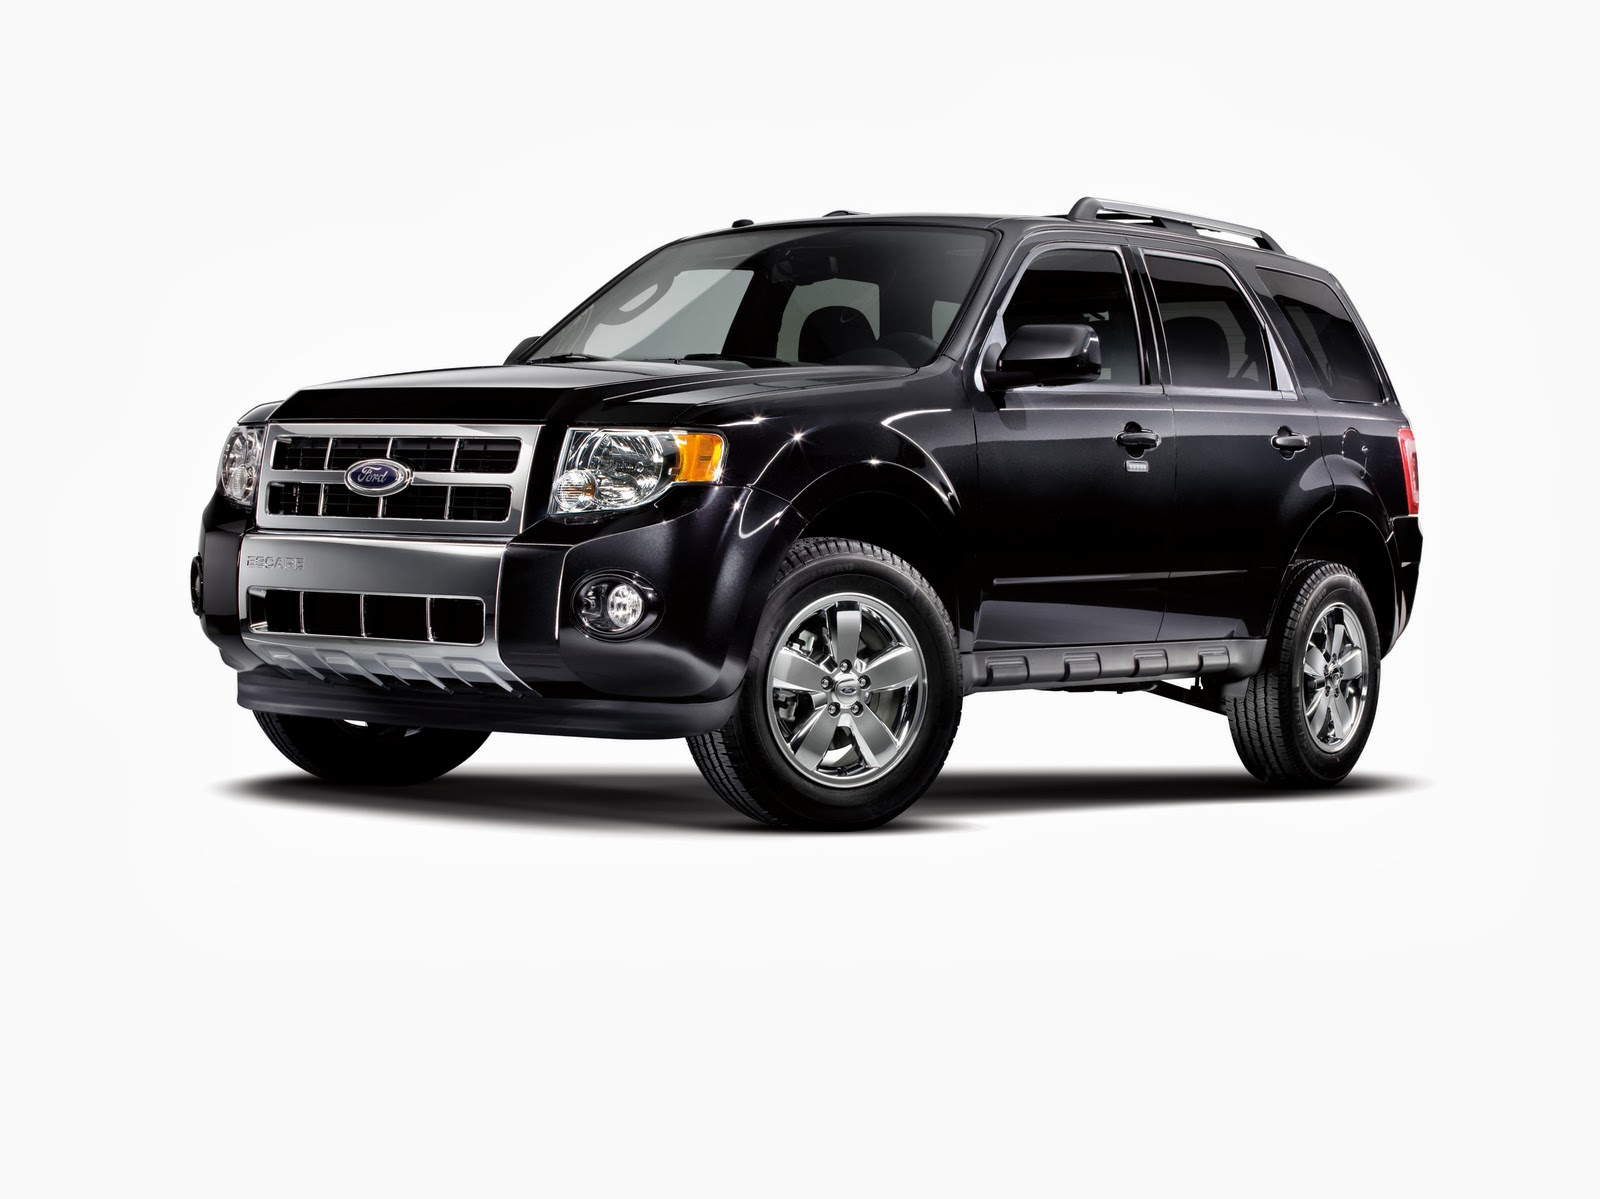 2012 ford escape owners manual owners manual free. Black Bedroom Furniture Sets. Home Design Ideas